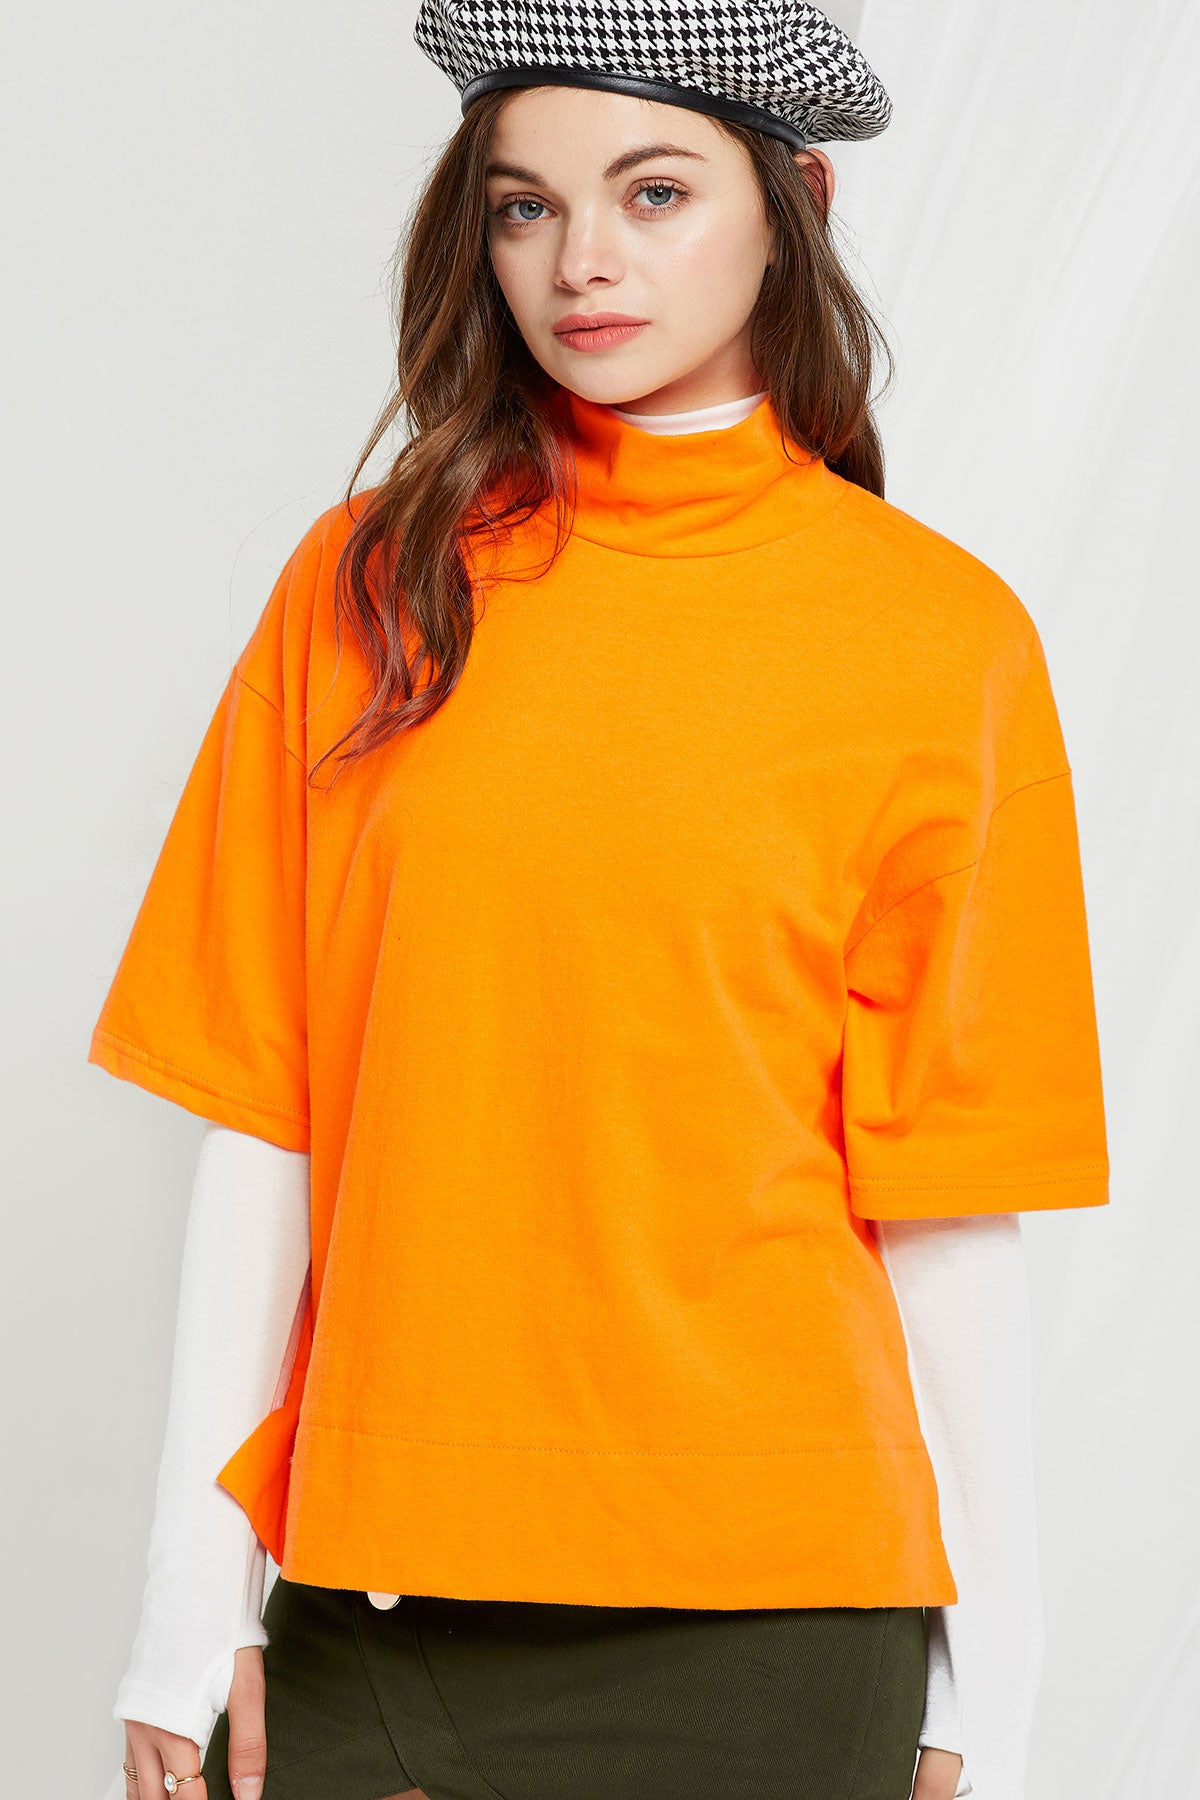 Iris Short Sleeve Mock Neck Top